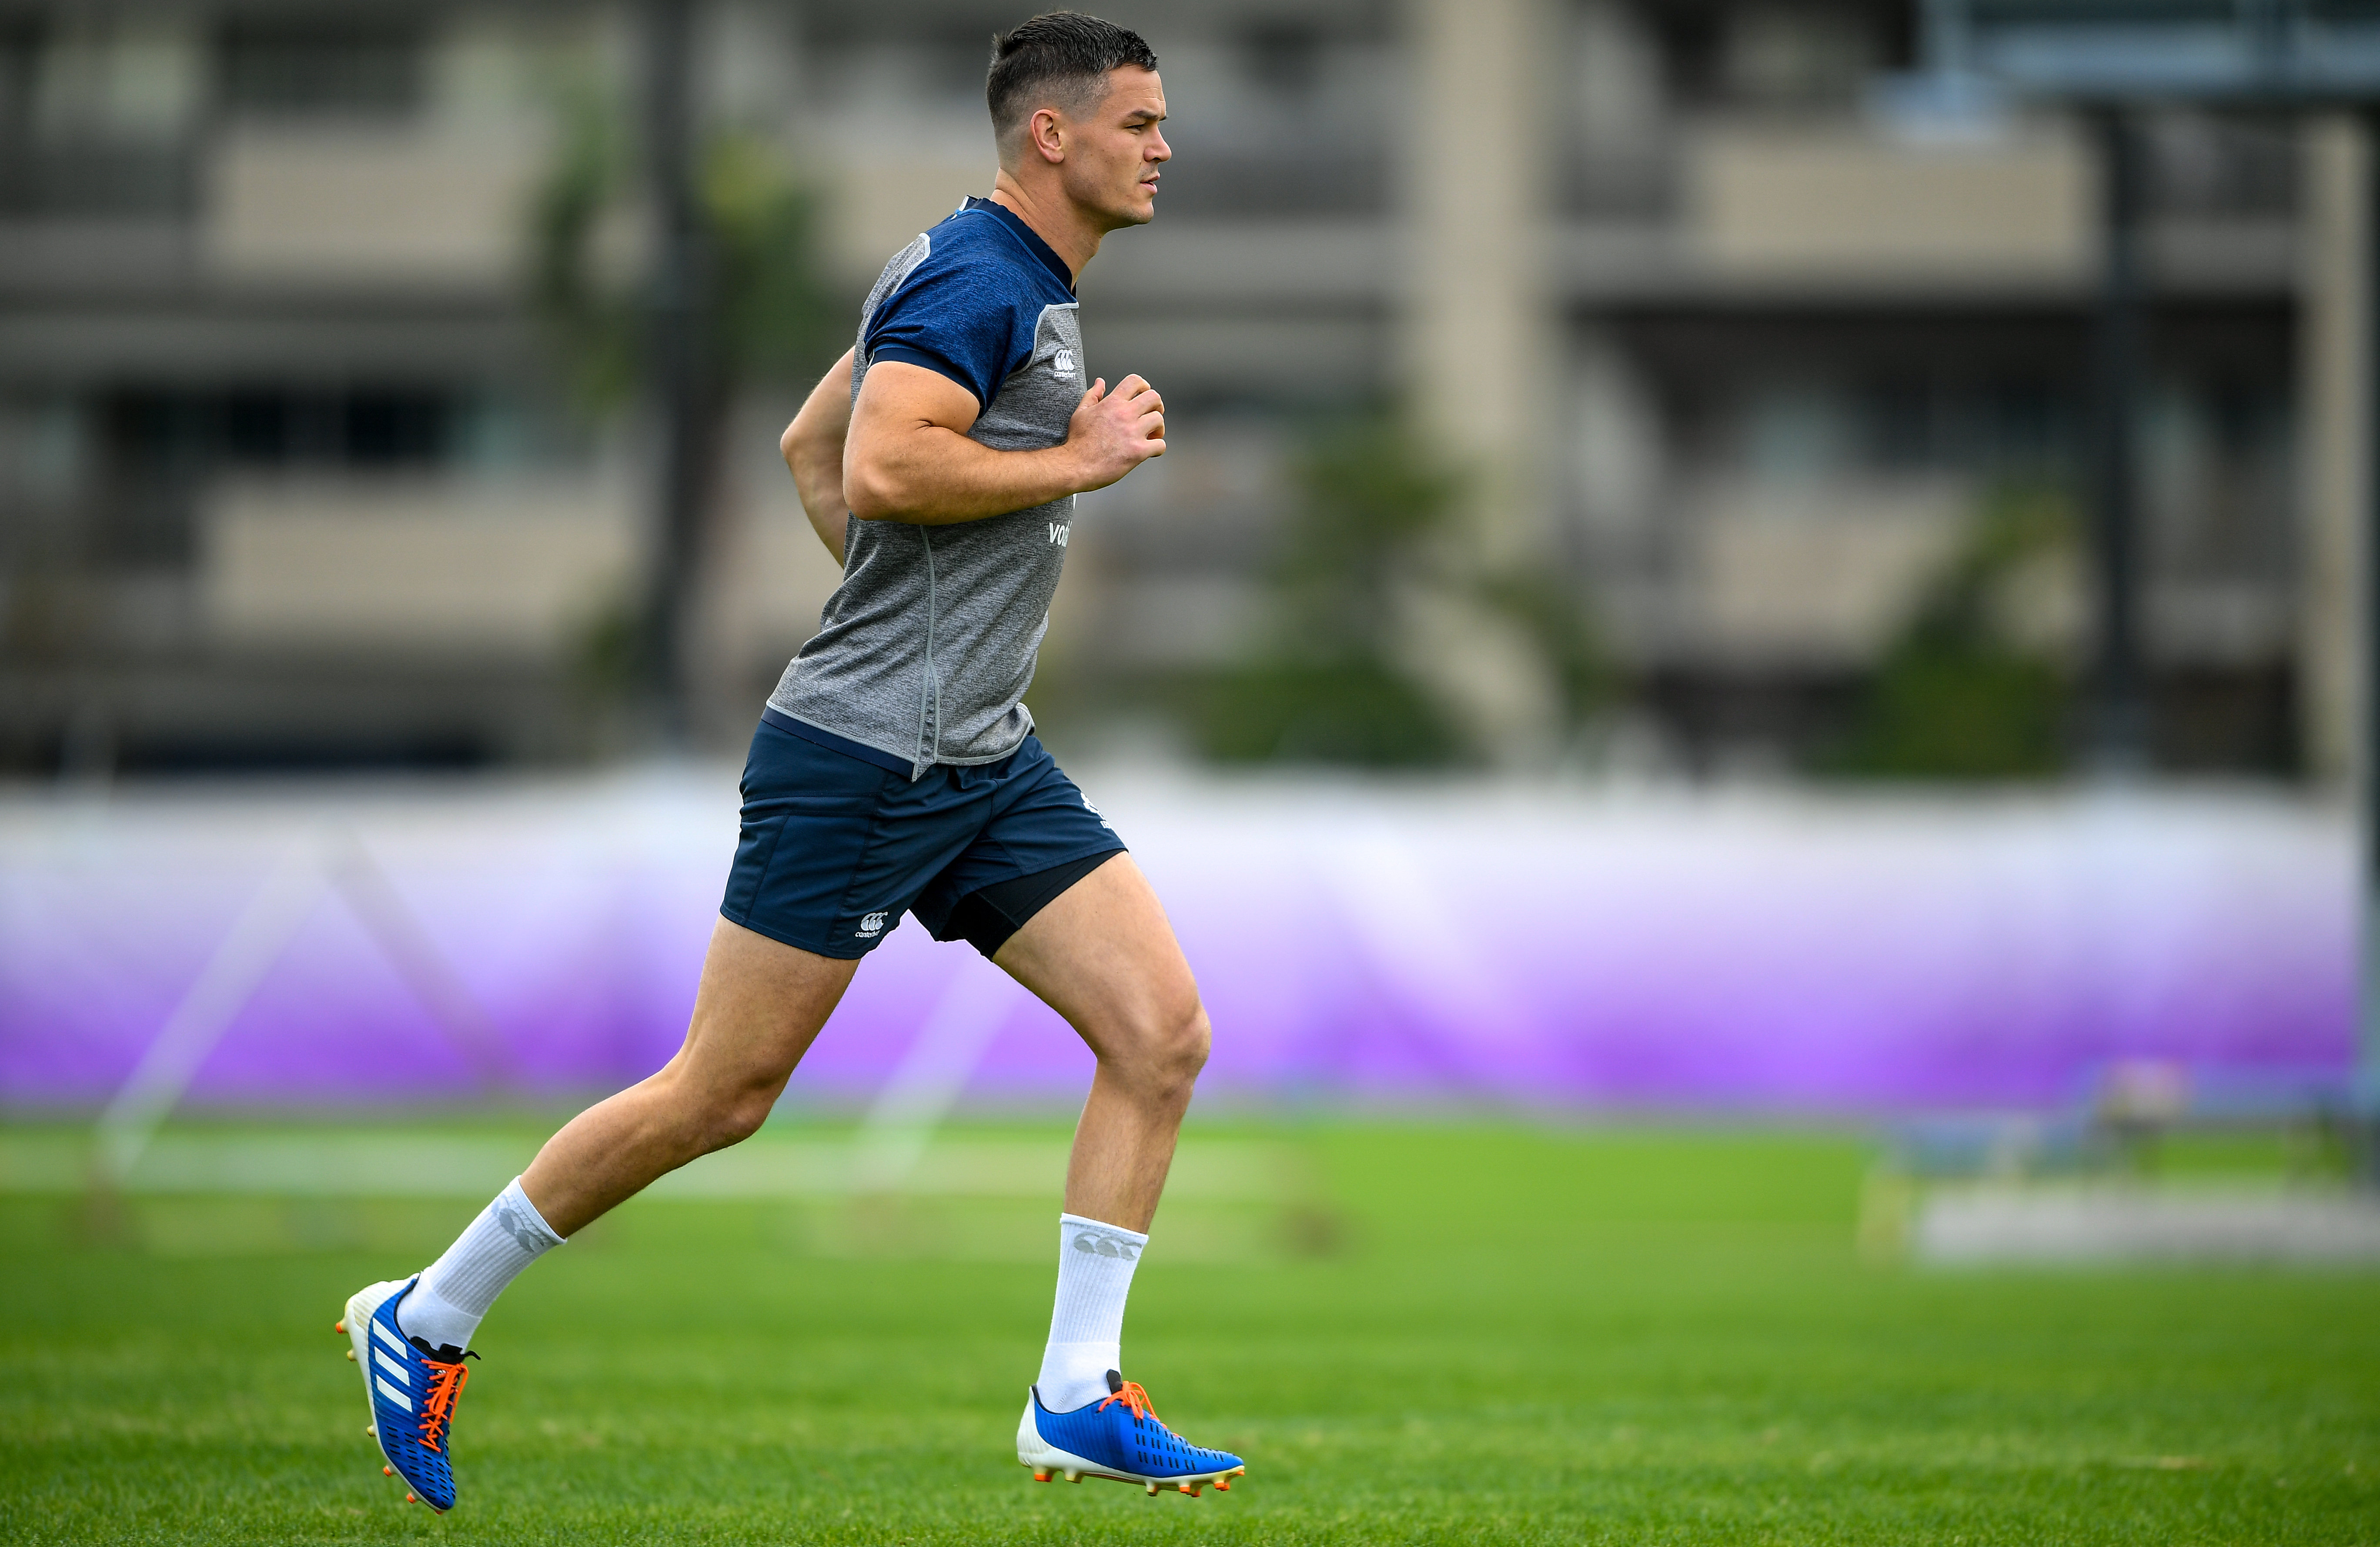 Rwc Half Back Rugby S//s Adults